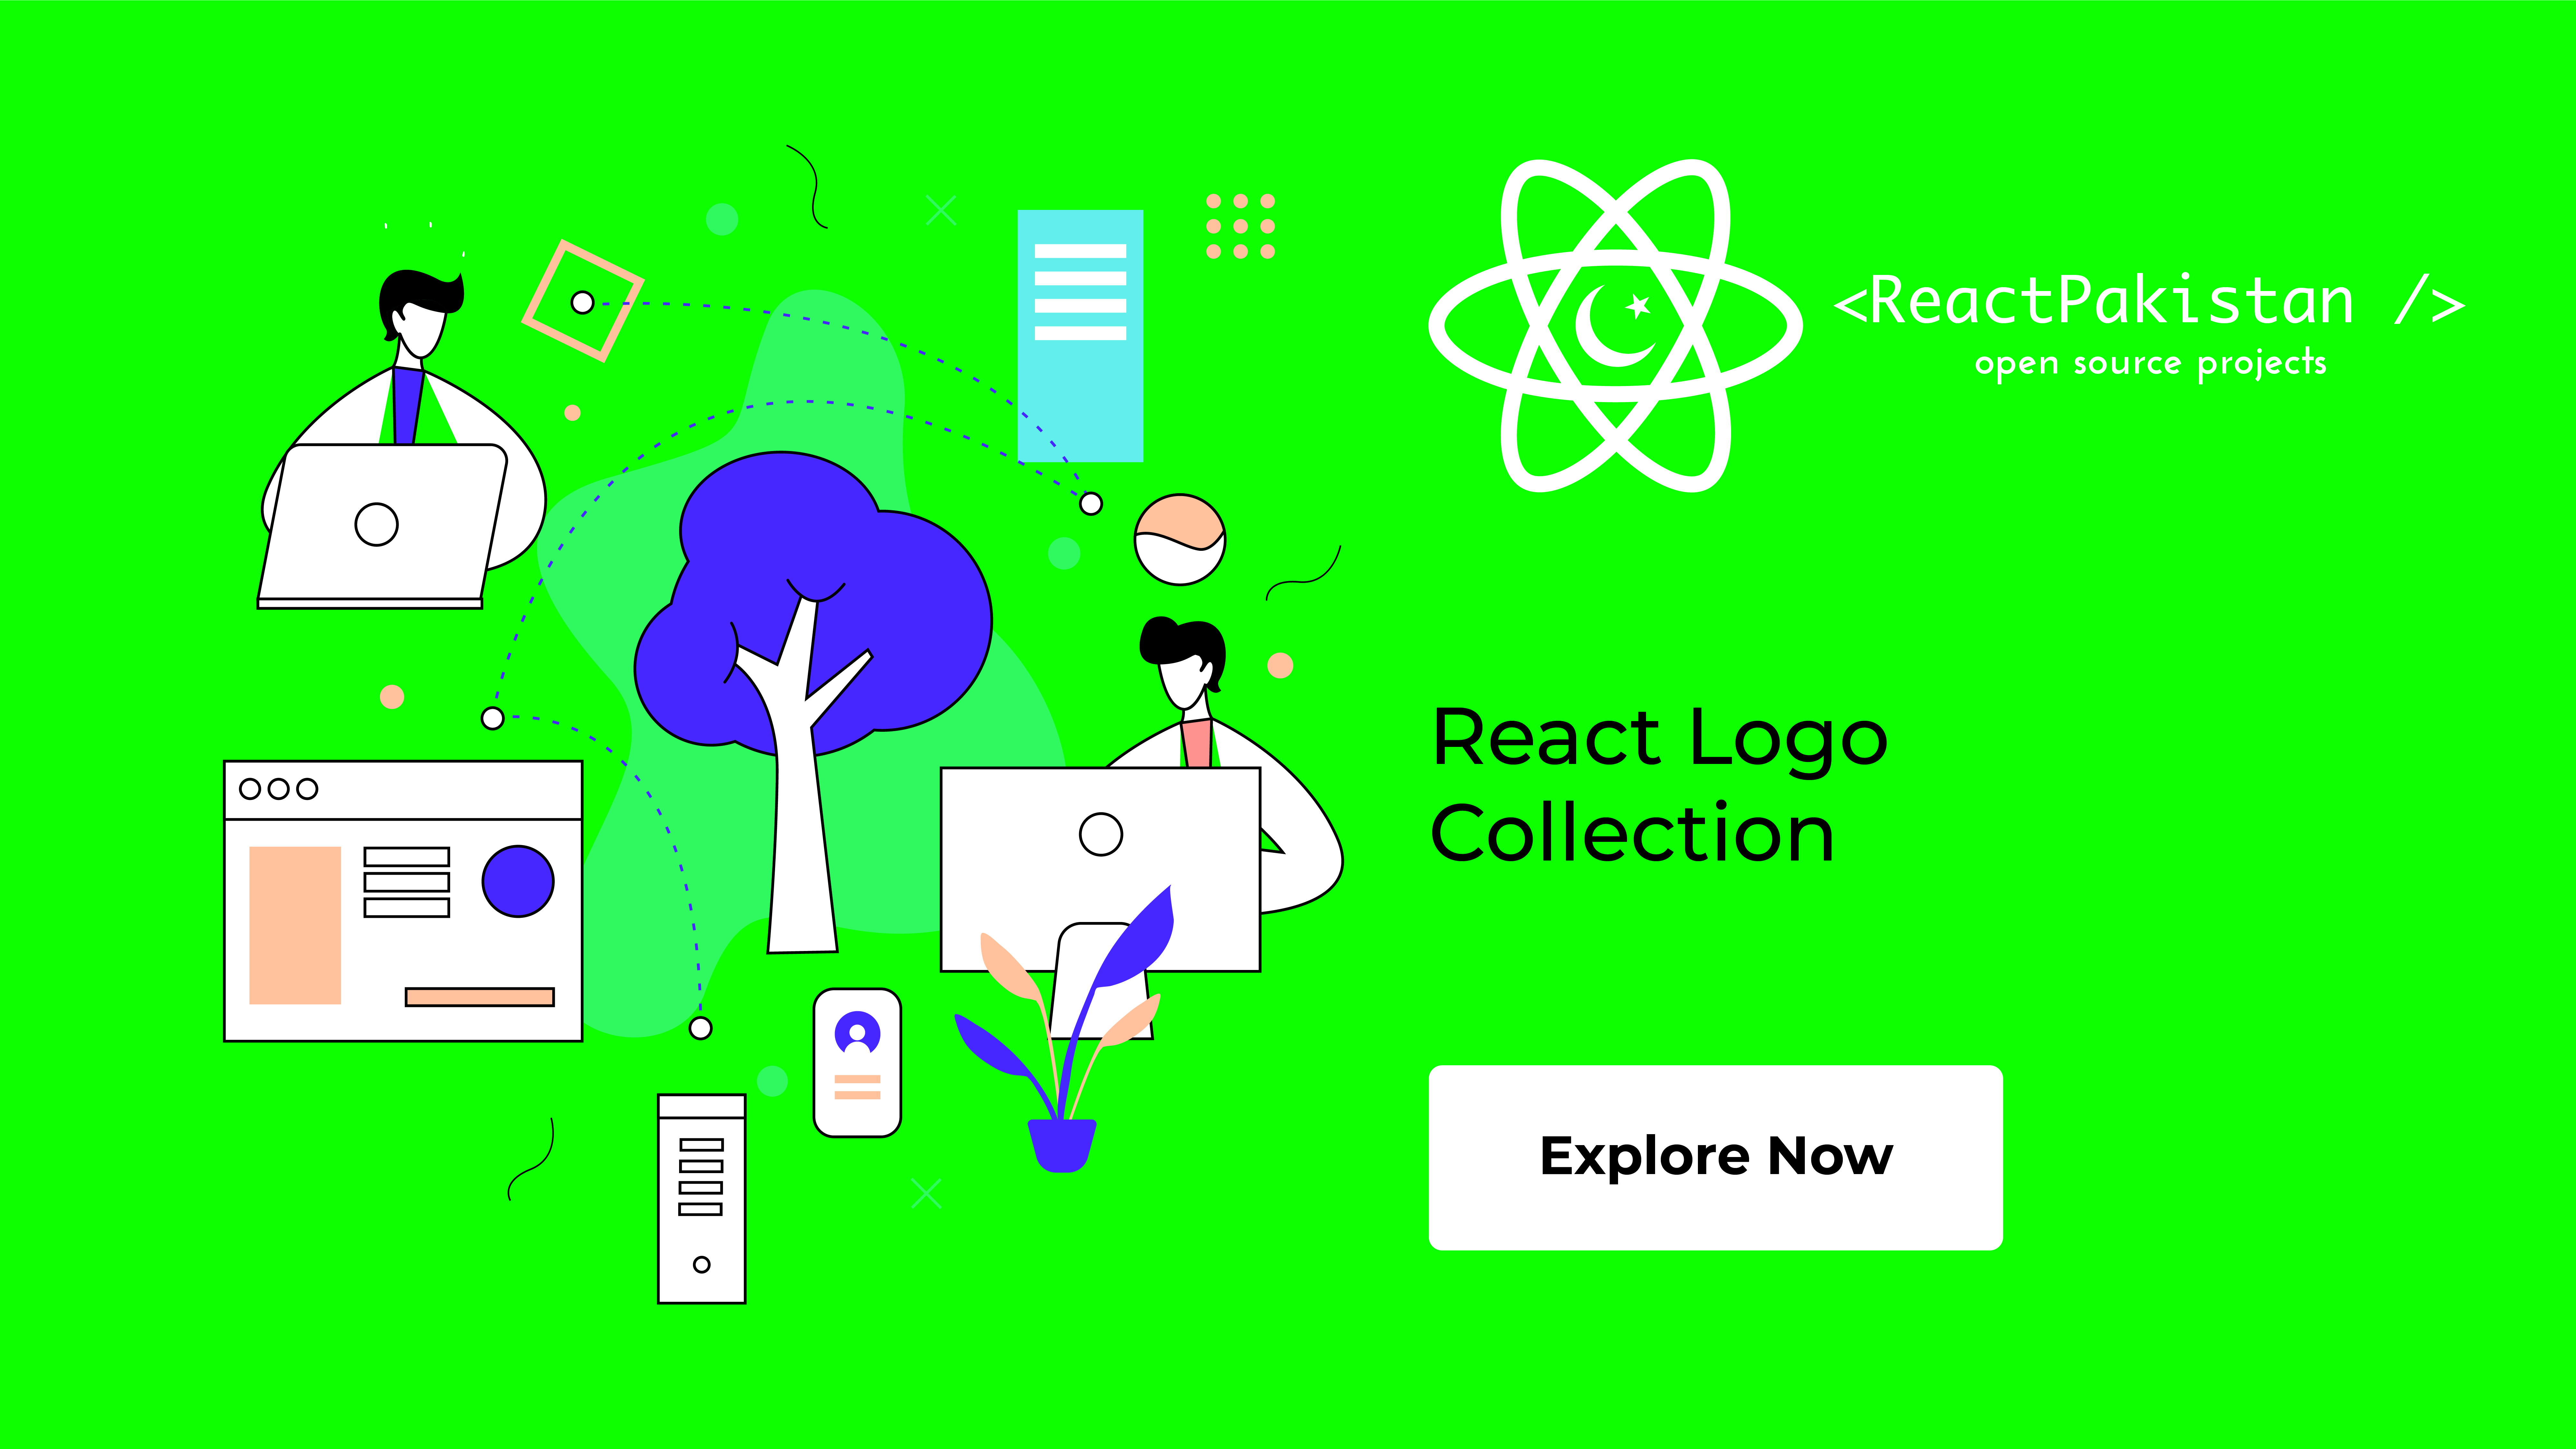 React Pakistan - React Logo Collection